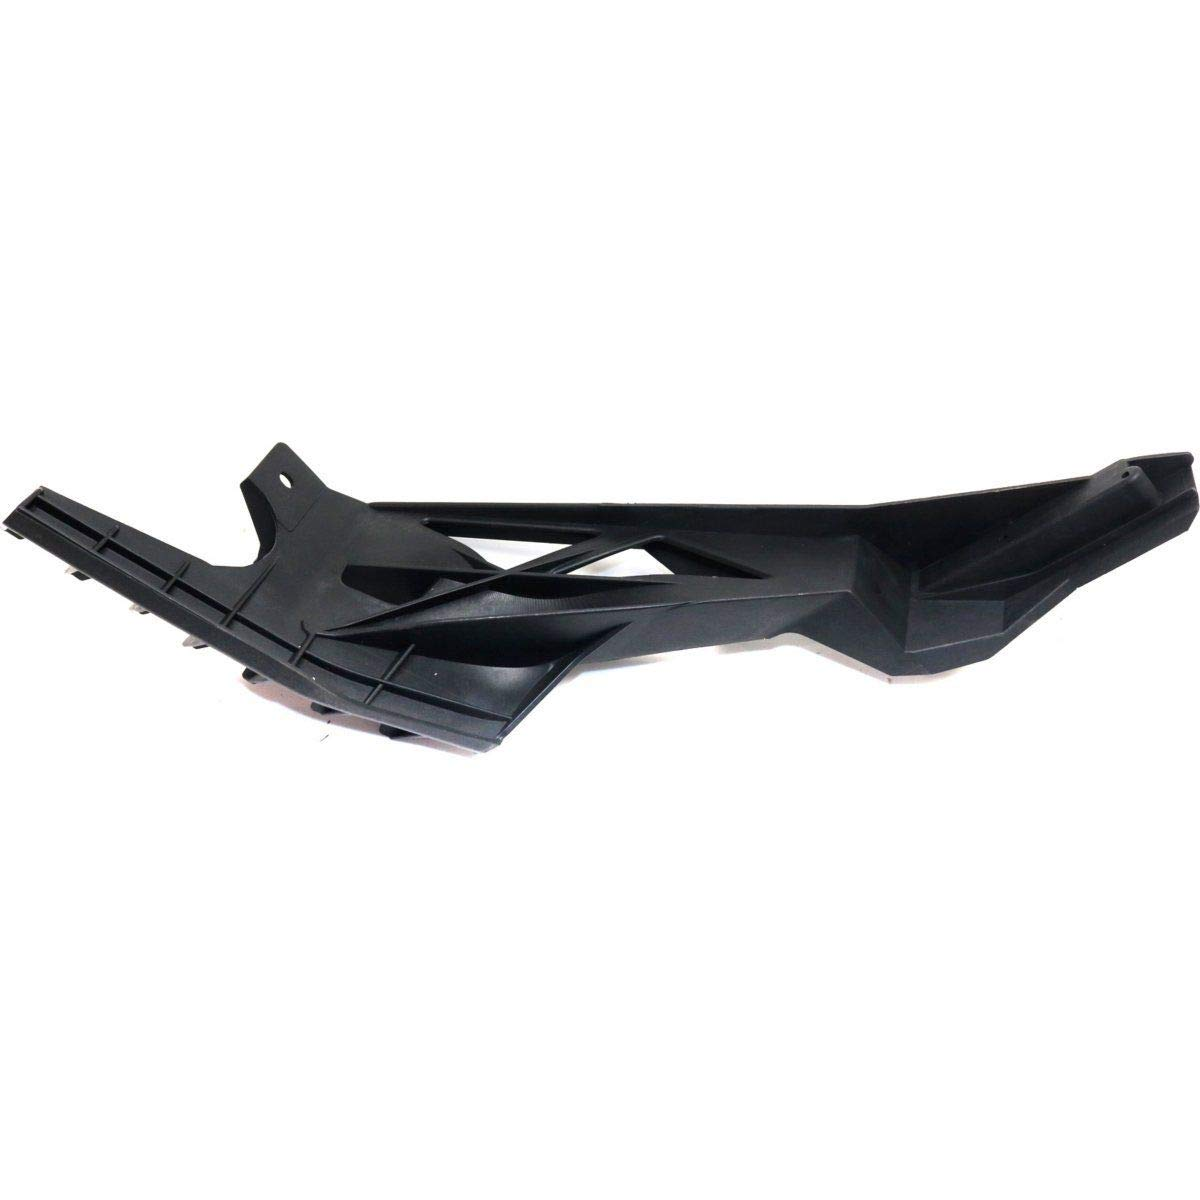 New Driver Side Fender Support For 2011-2018 Dodge Caravan 2011-2016 Chrysler Town And Country Fender Bracket CH1244105 68084829AA